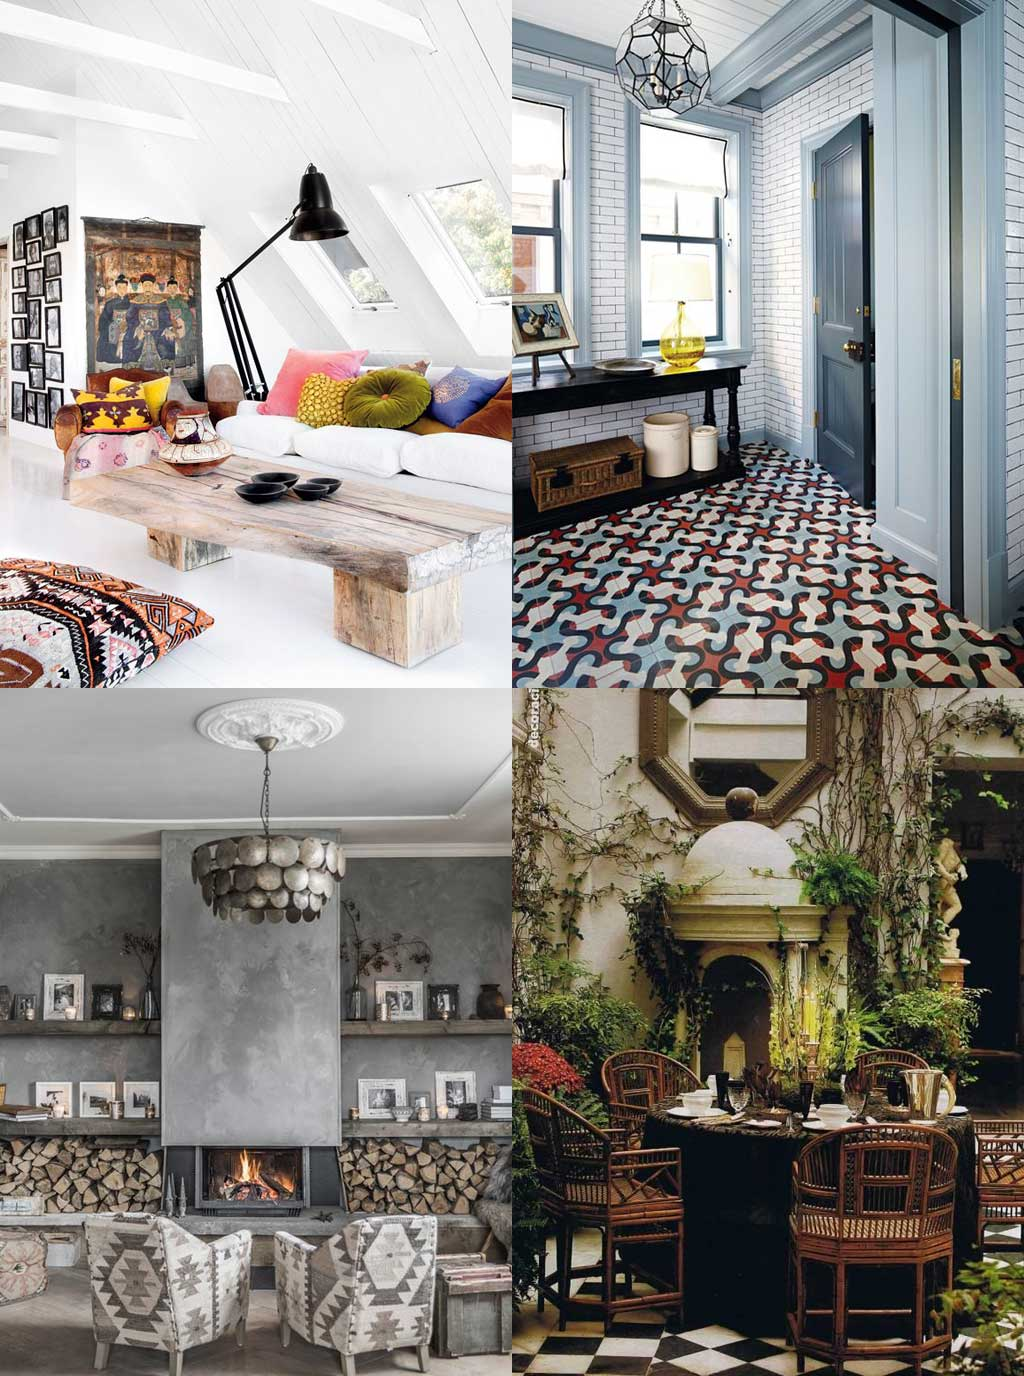 The 10 biggest Interior Design mistakes - Hutsly